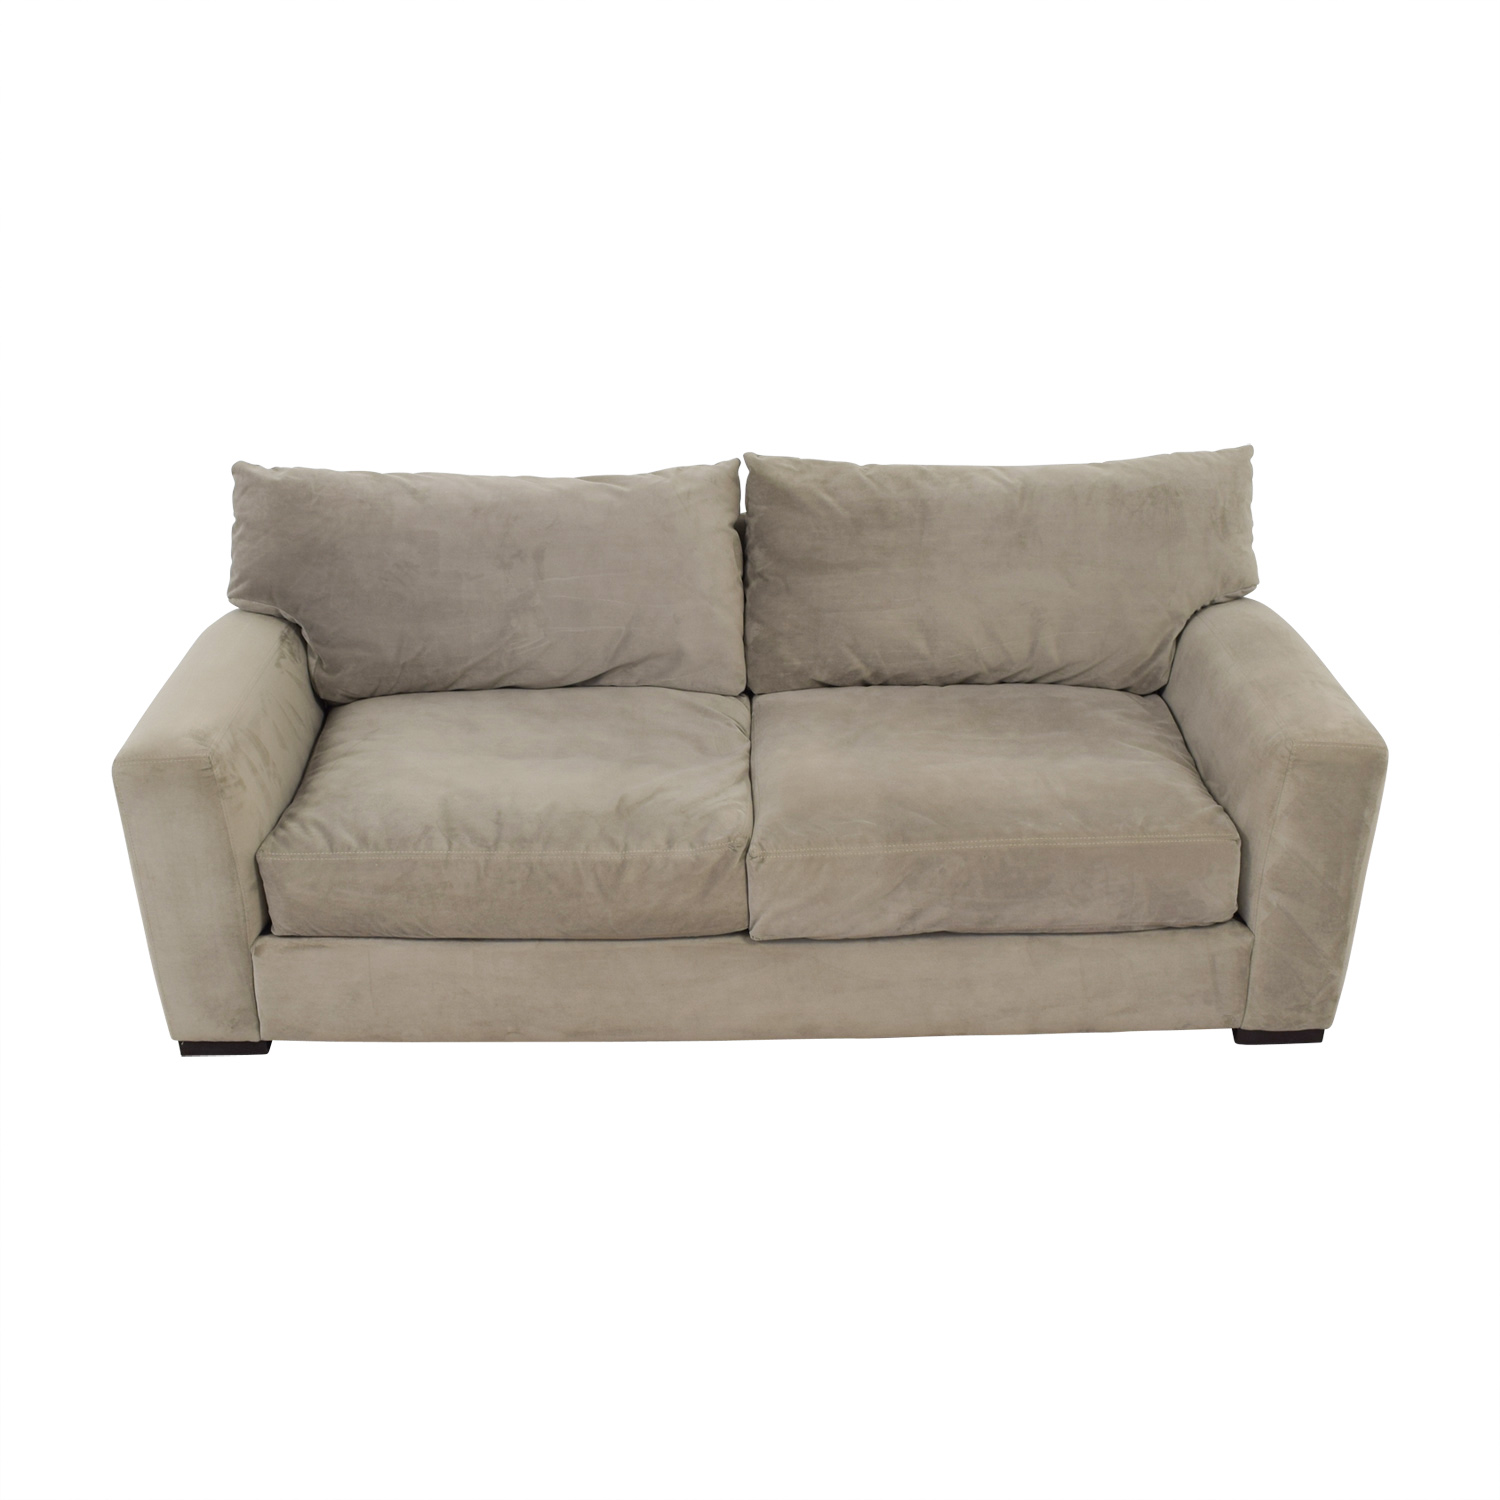 buy Raymour & Flanigan Grey Carlin Microfiber Sofa Raymour & Flanigan Sofas